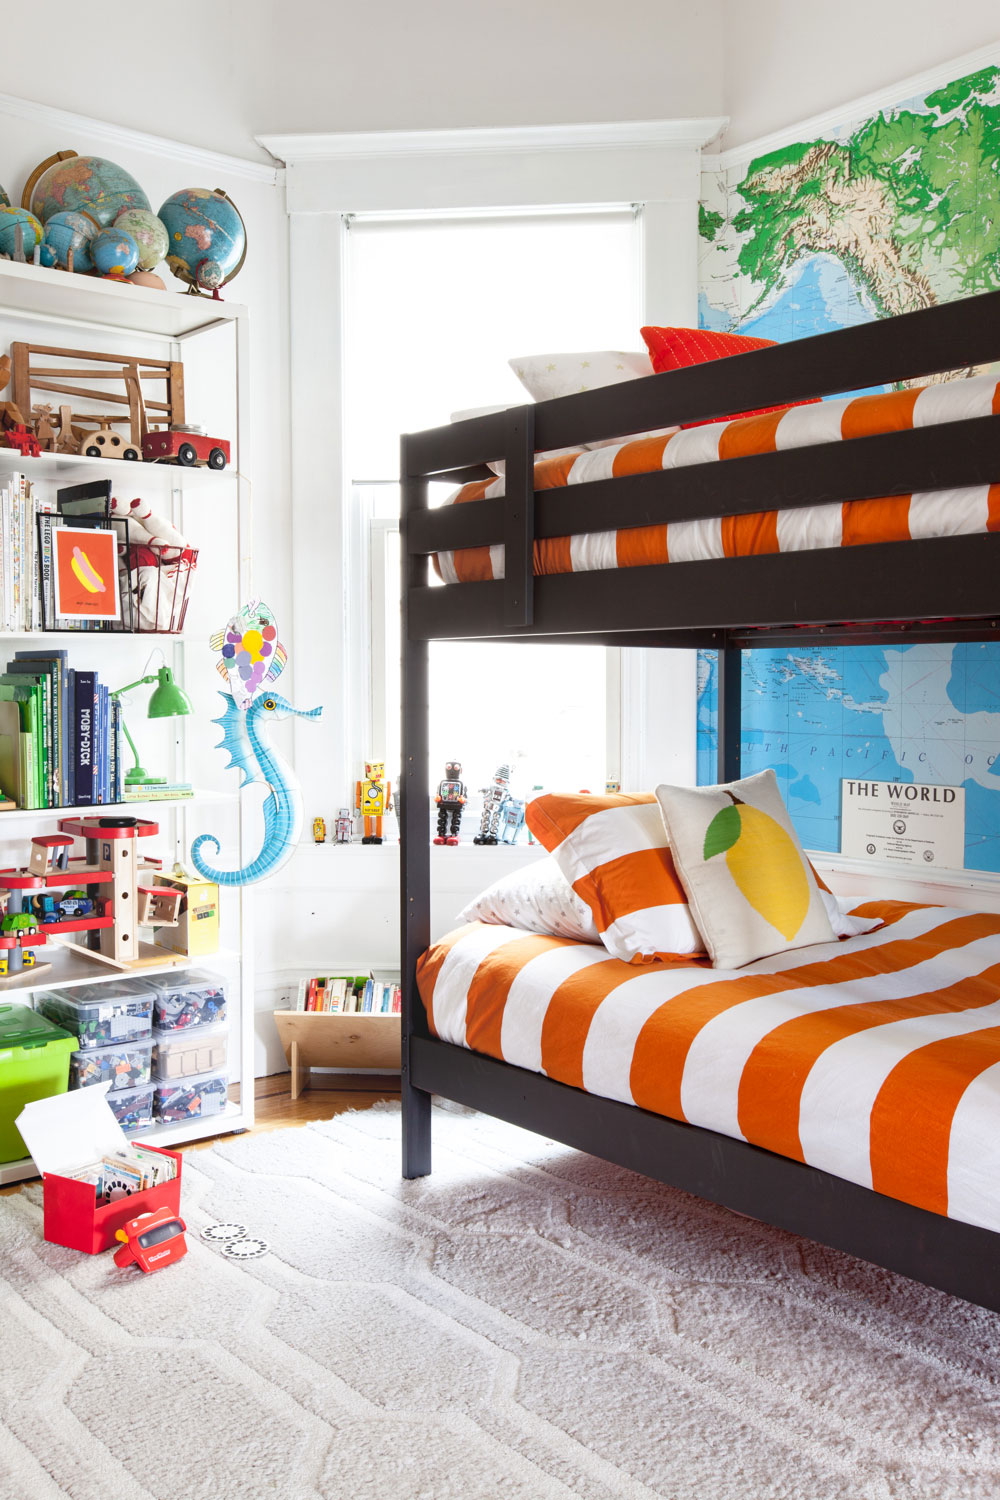 Boys' room with map on wall and bunk beds